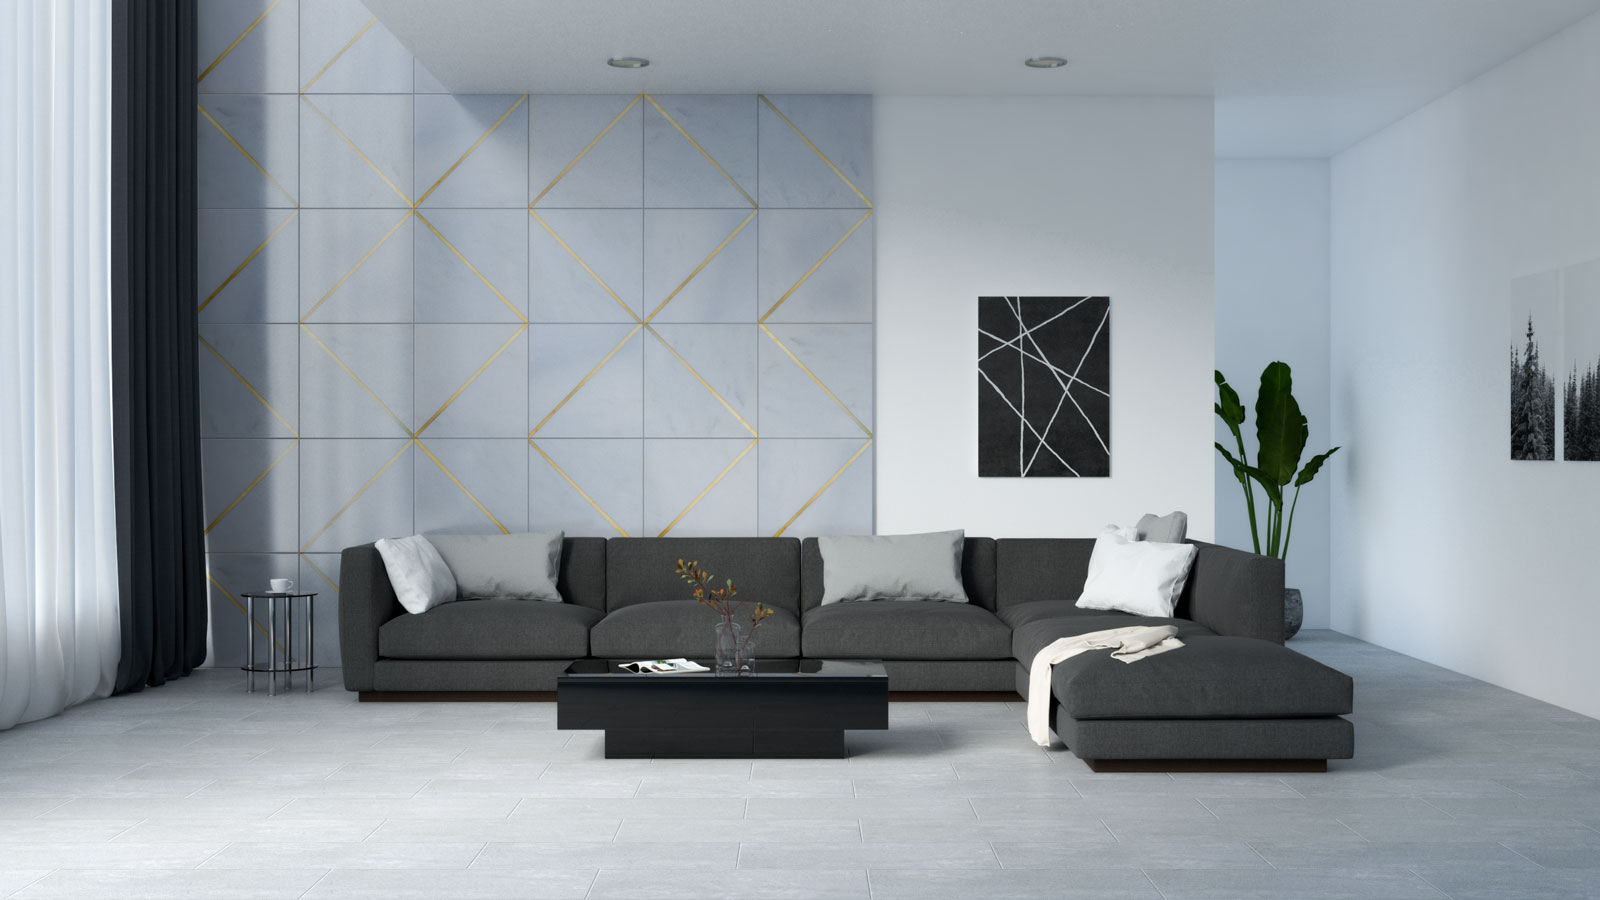 Living room with black furniture and gray flooring